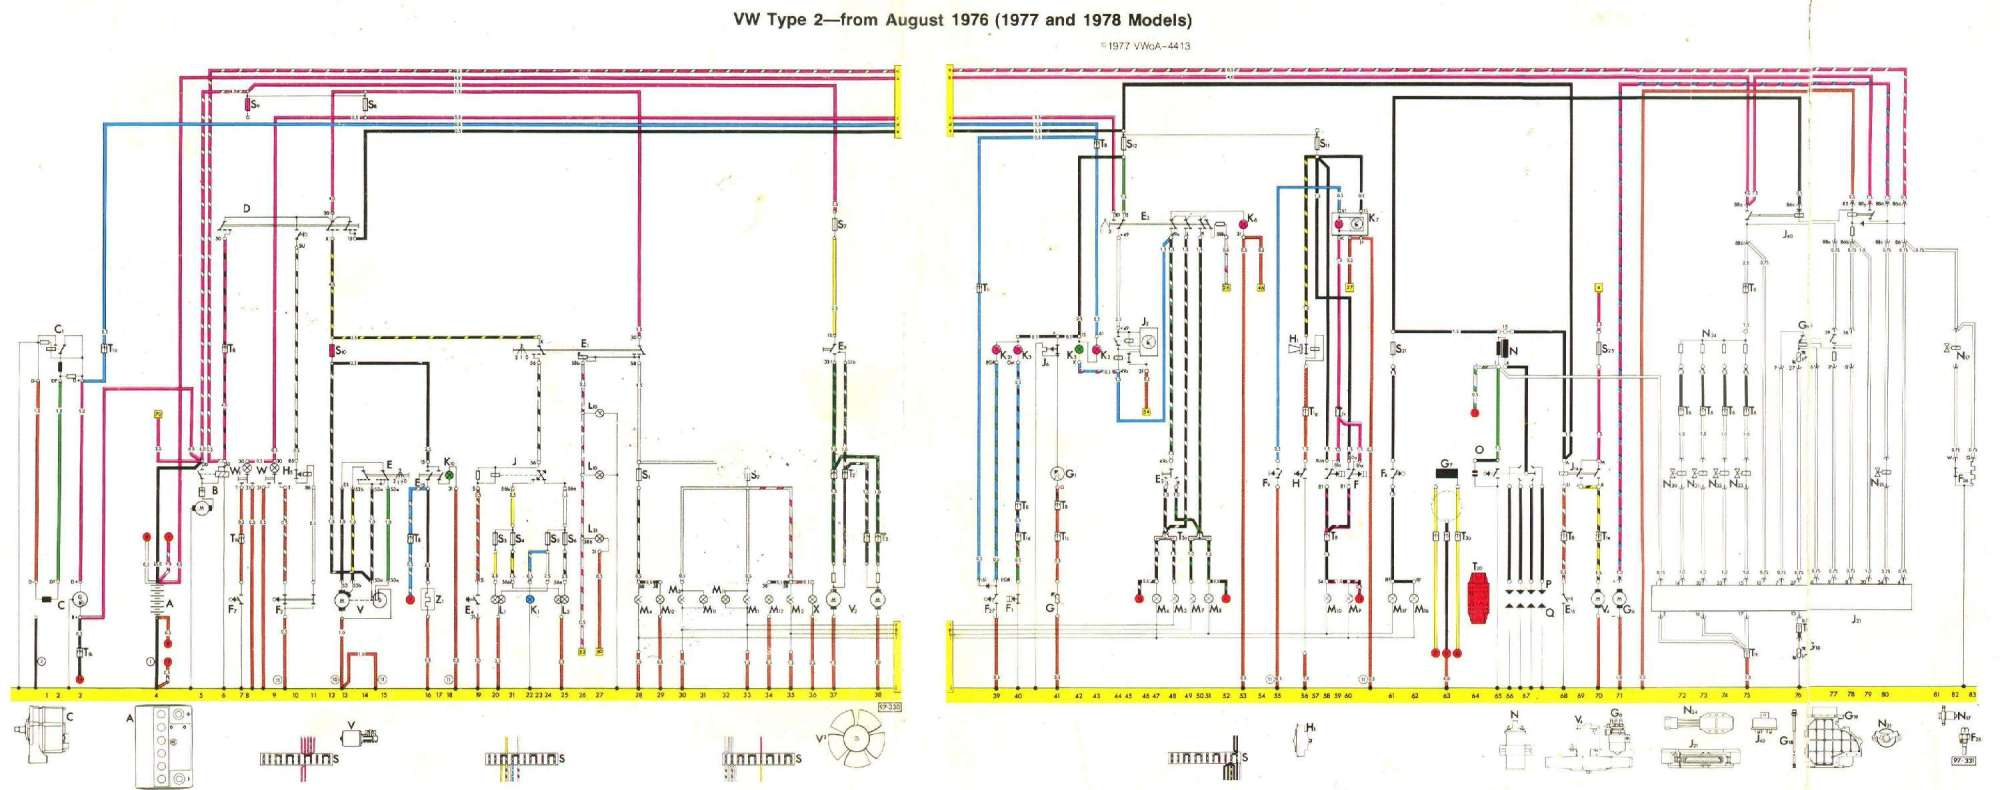 hight resolution of august 1975 august 1976 1977 and 1978 models baywindow fusebox layout